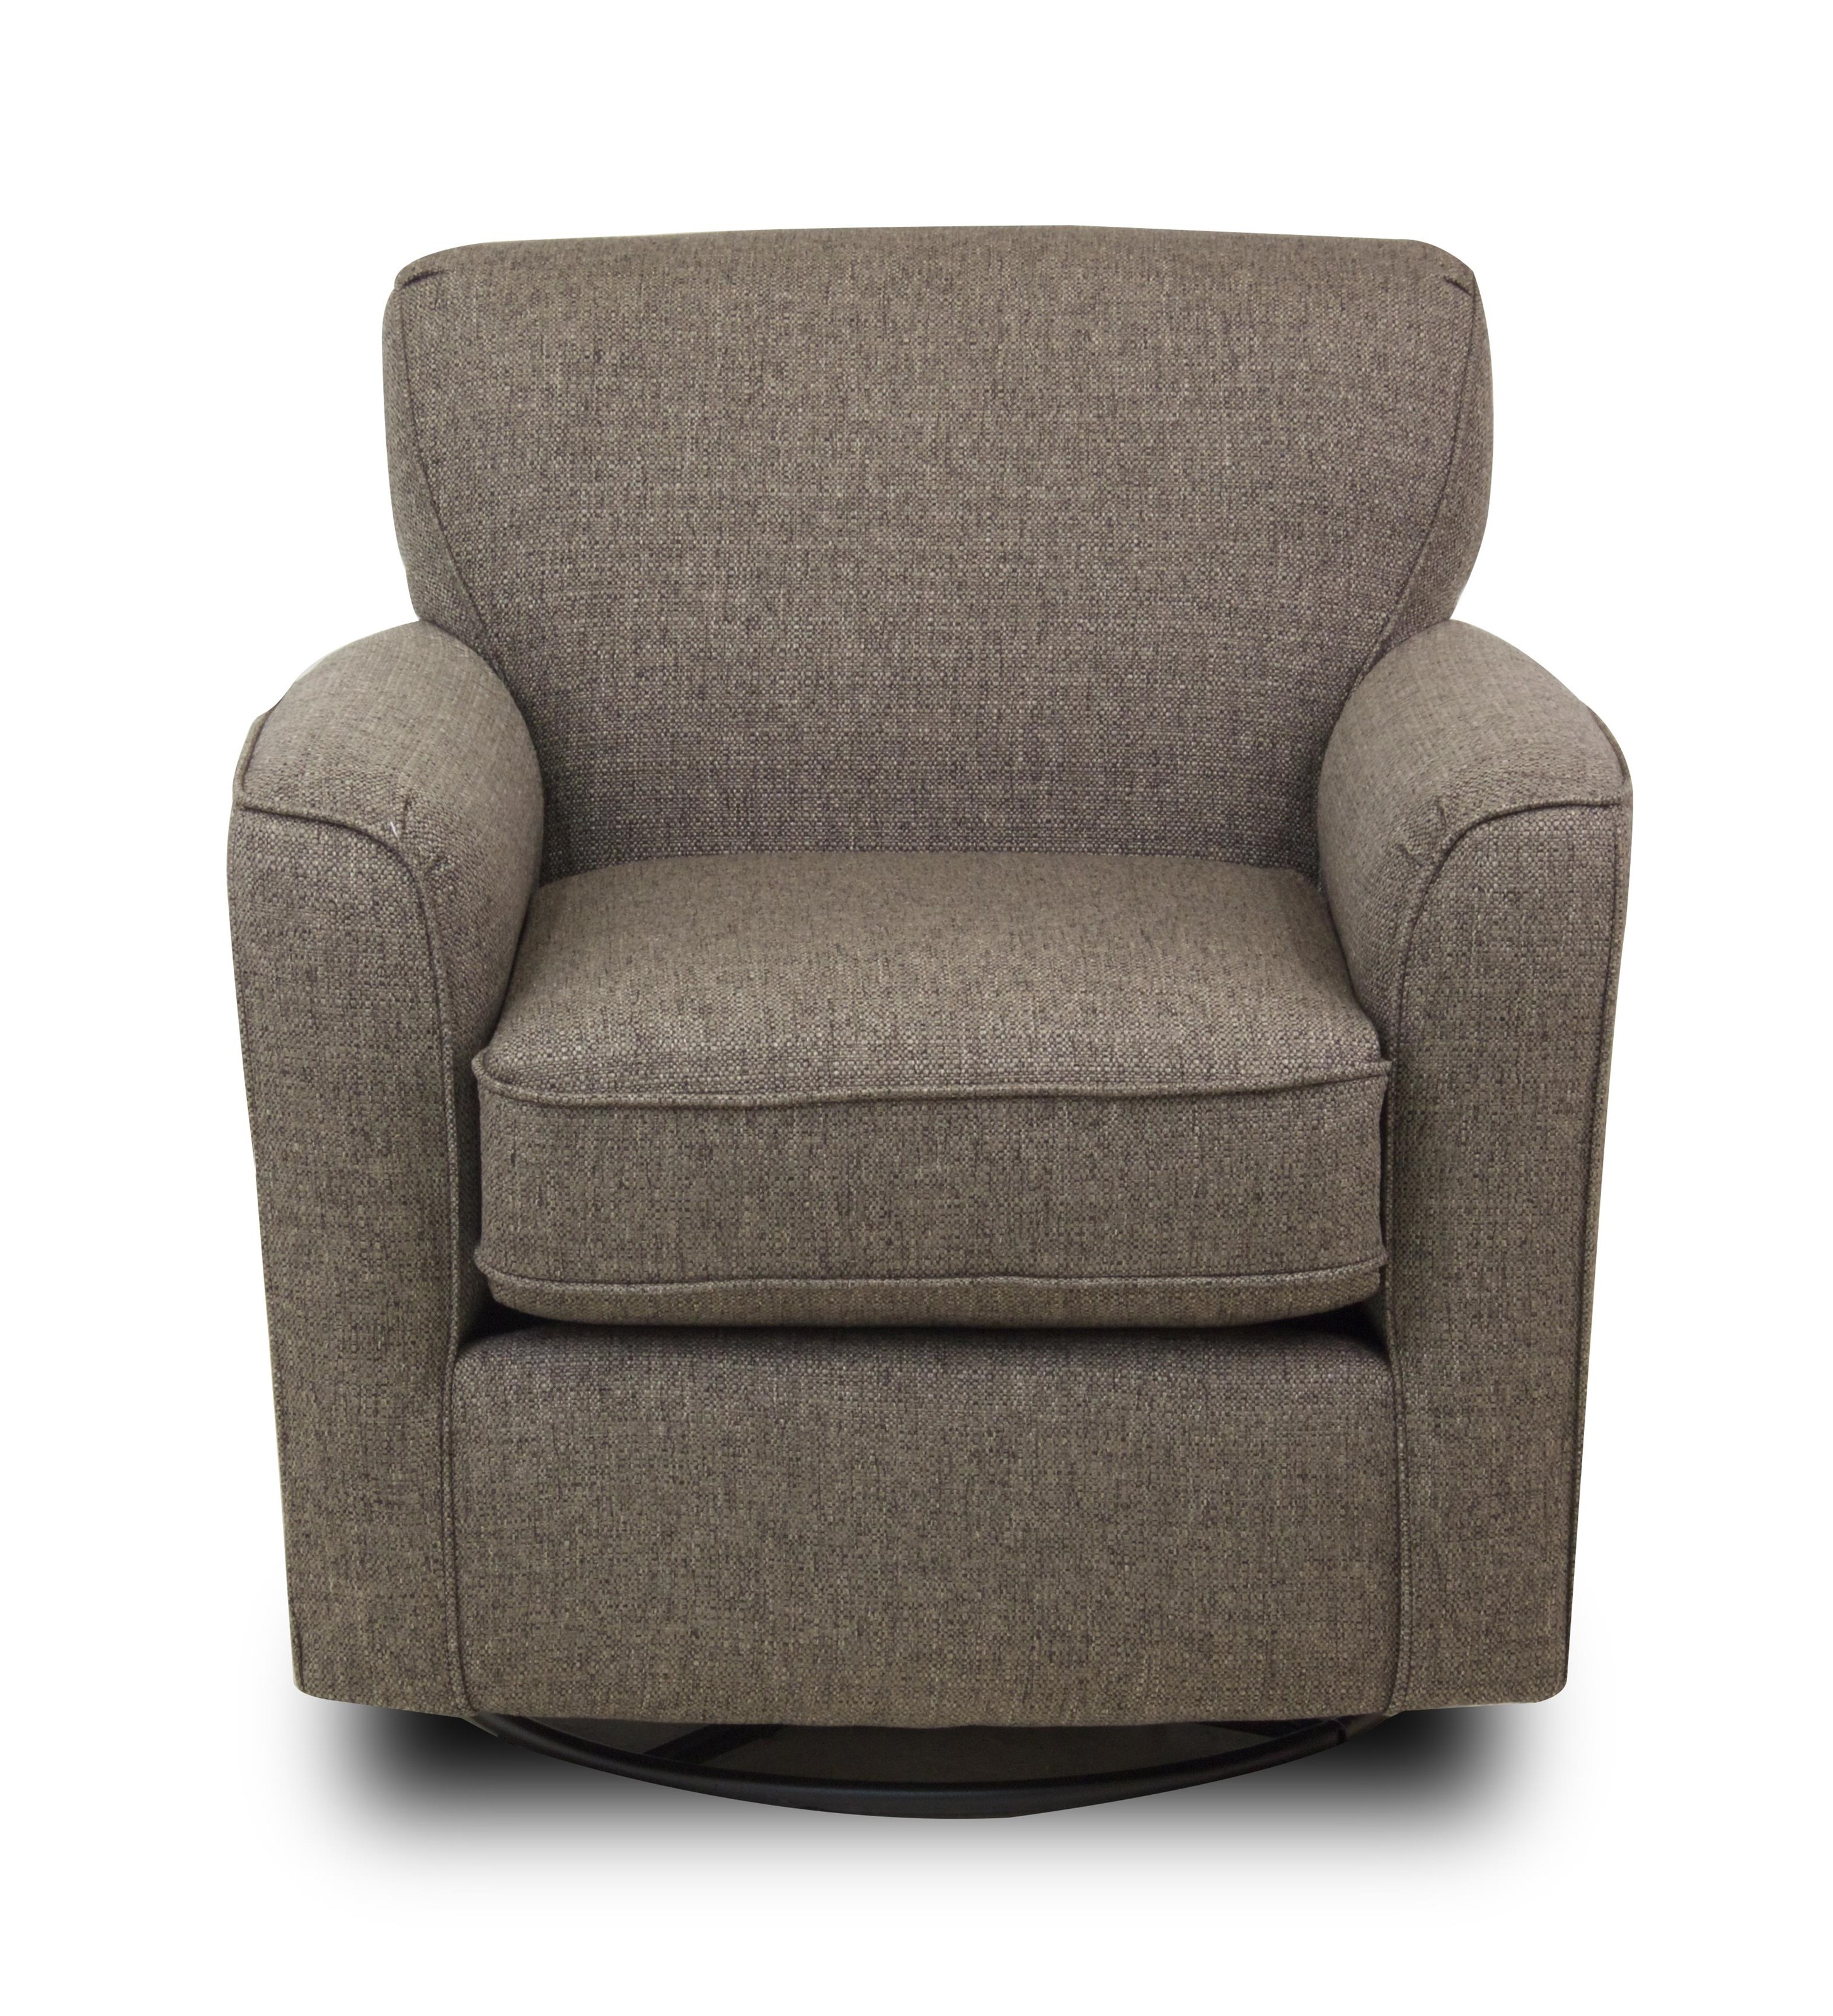 Groovy Swivel Glide Chairs Kaylee Swivel Barrel Chair Ocoug Best Dining Table And Chair Ideas Images Ocougorg